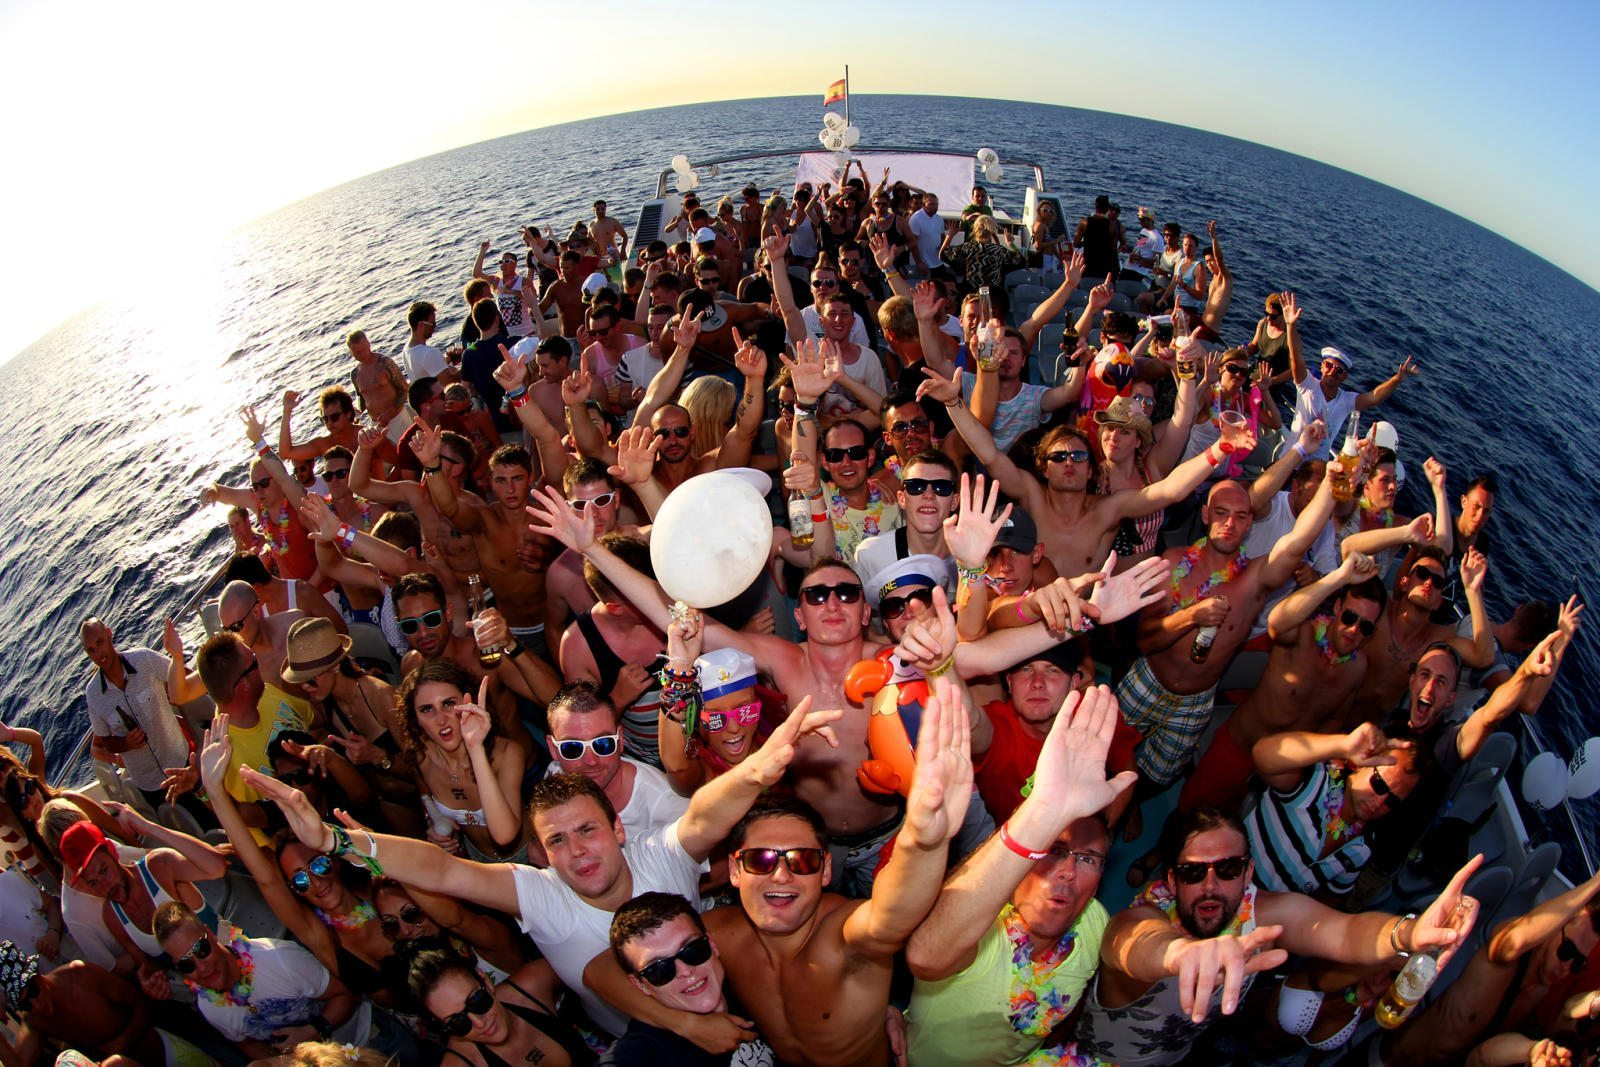 the boat party The scandal has sometimes been referred to as the love boat scandal after the television program, or as the smoot boat scandal in the news allegedly, photographs were taken at the party showing people engaging in sexual intercourse.